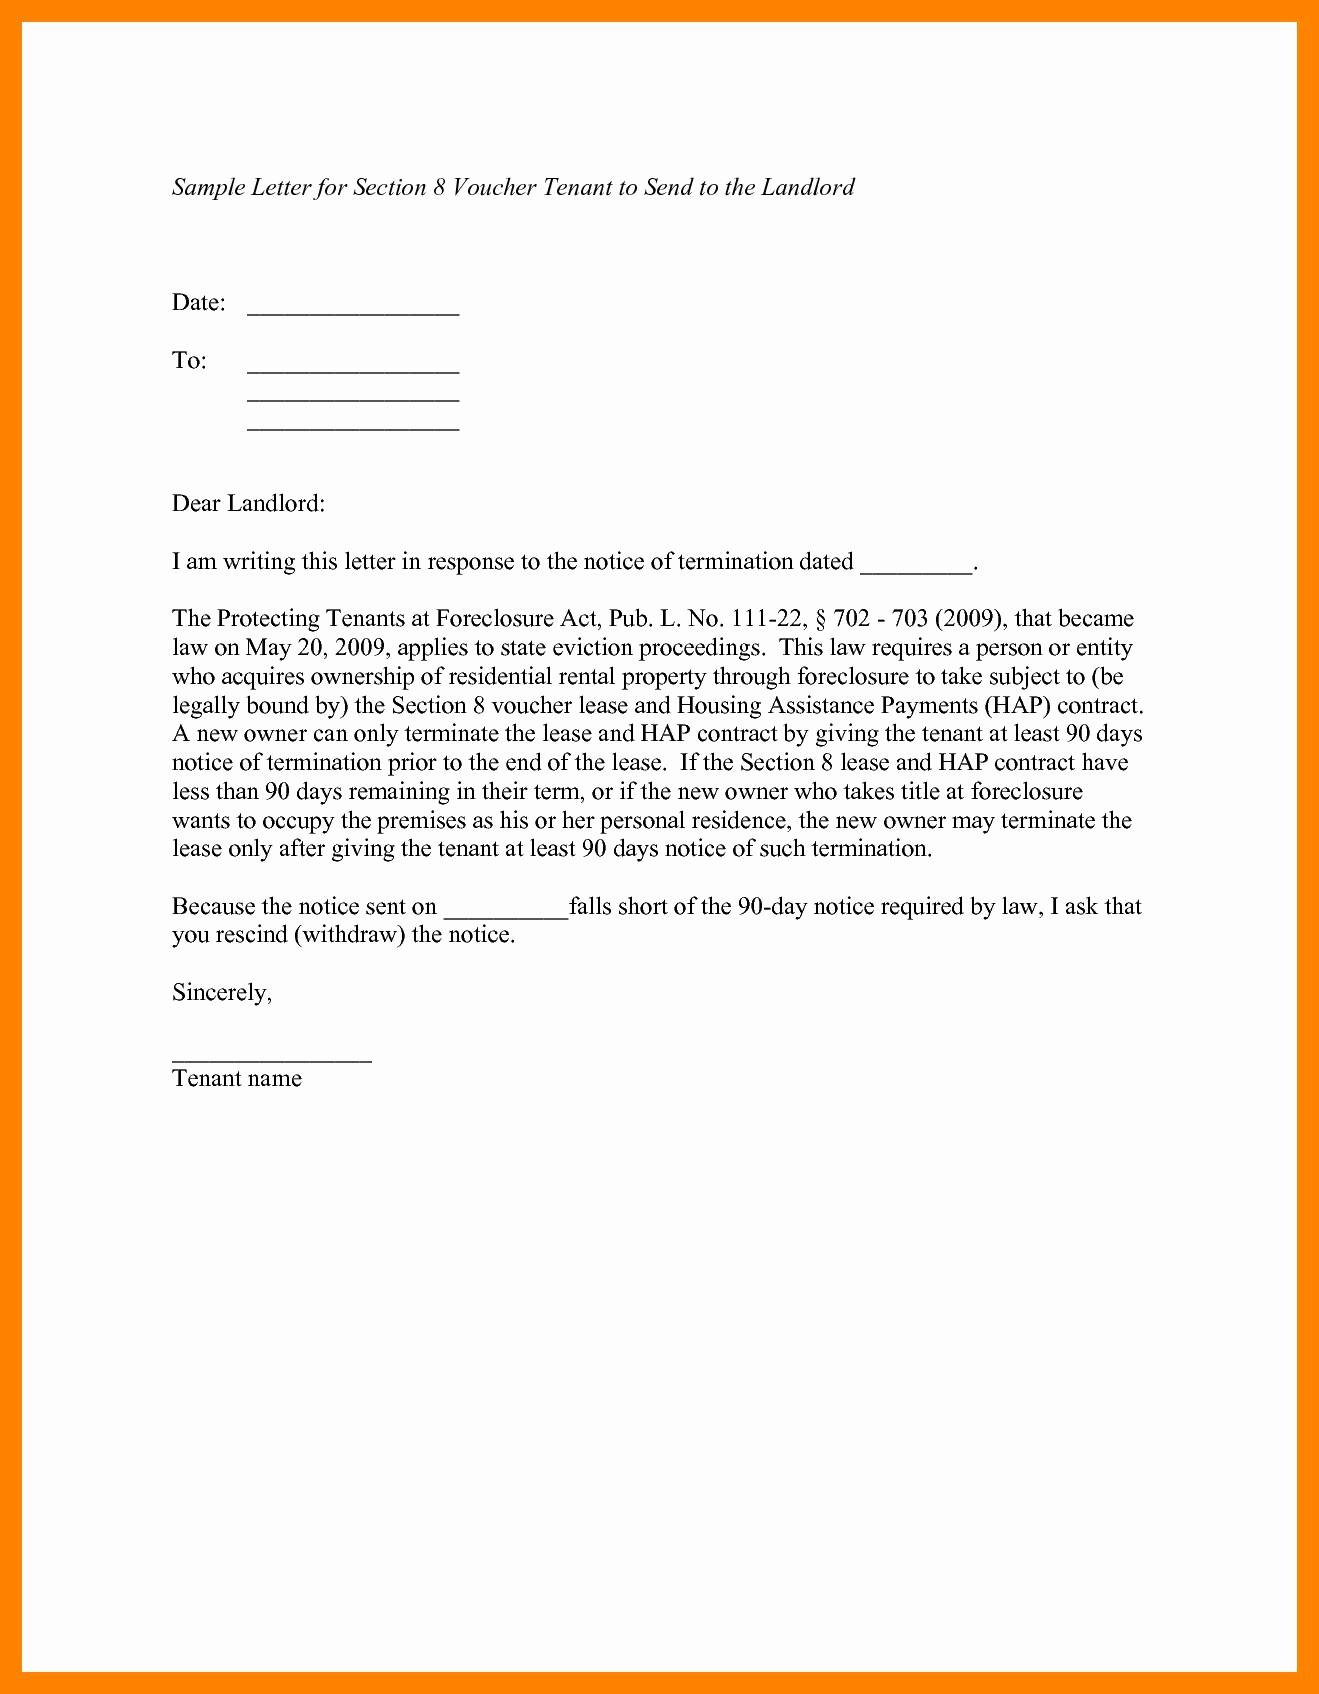 Giving Notice to Tenants Letter Template - Notice Letter to Landlord Template New Letter Template for Giving